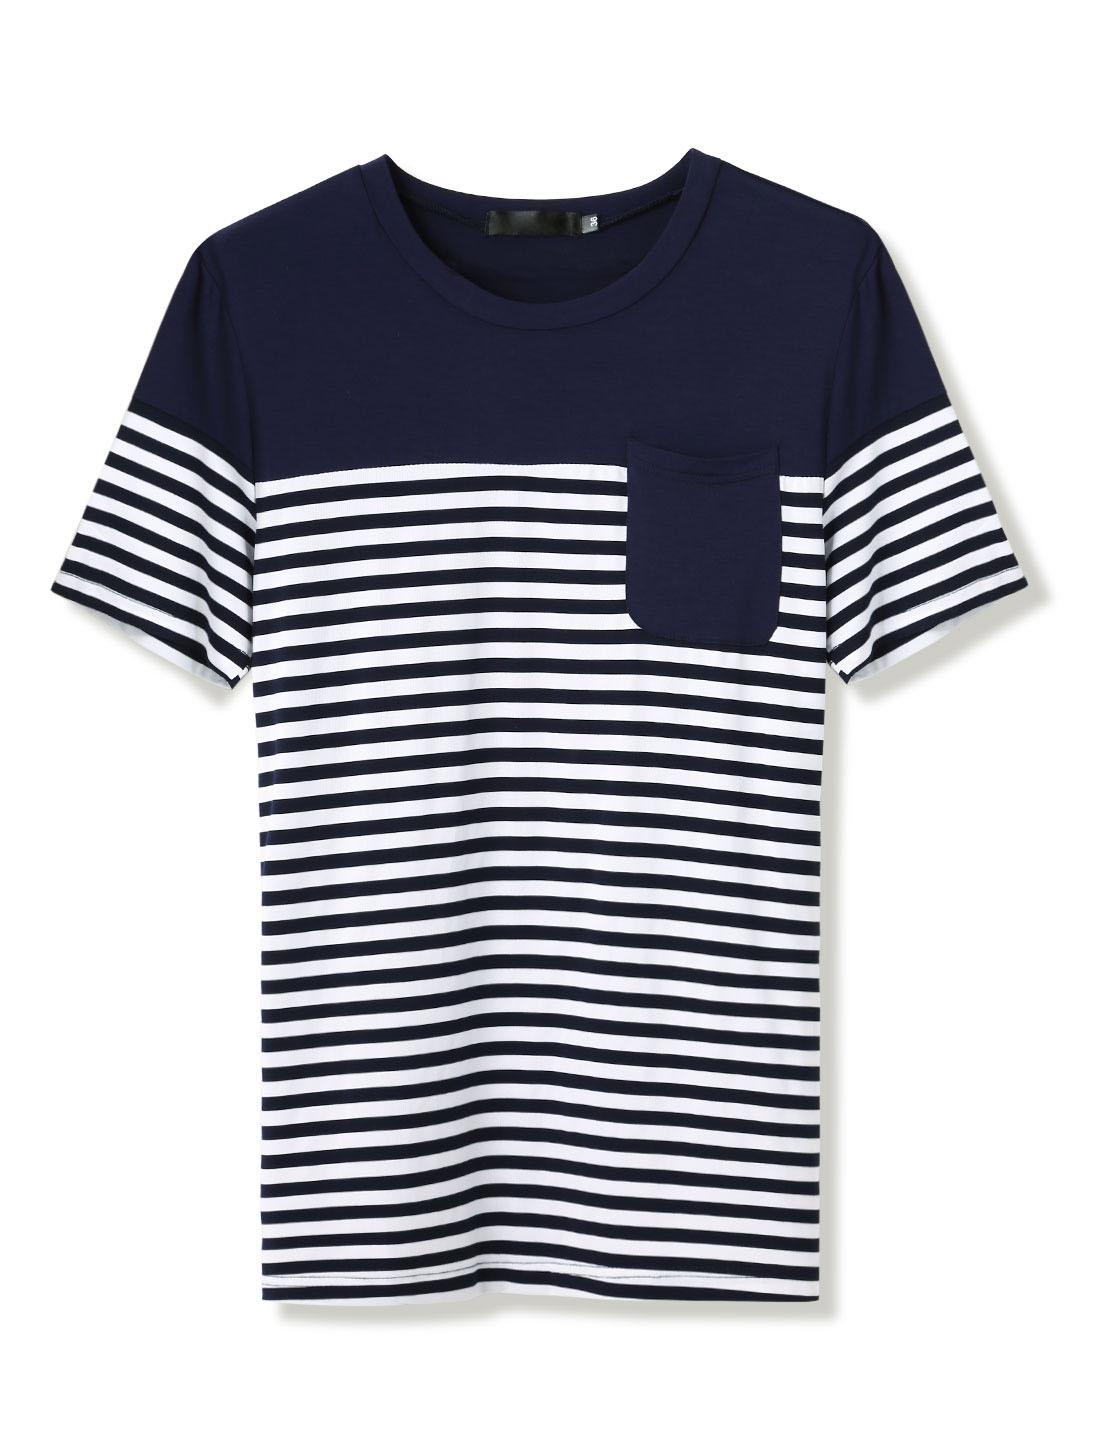 Men Short Sleeve Patch Pocket Slim Fit Striped T Shirt Navy Blue S